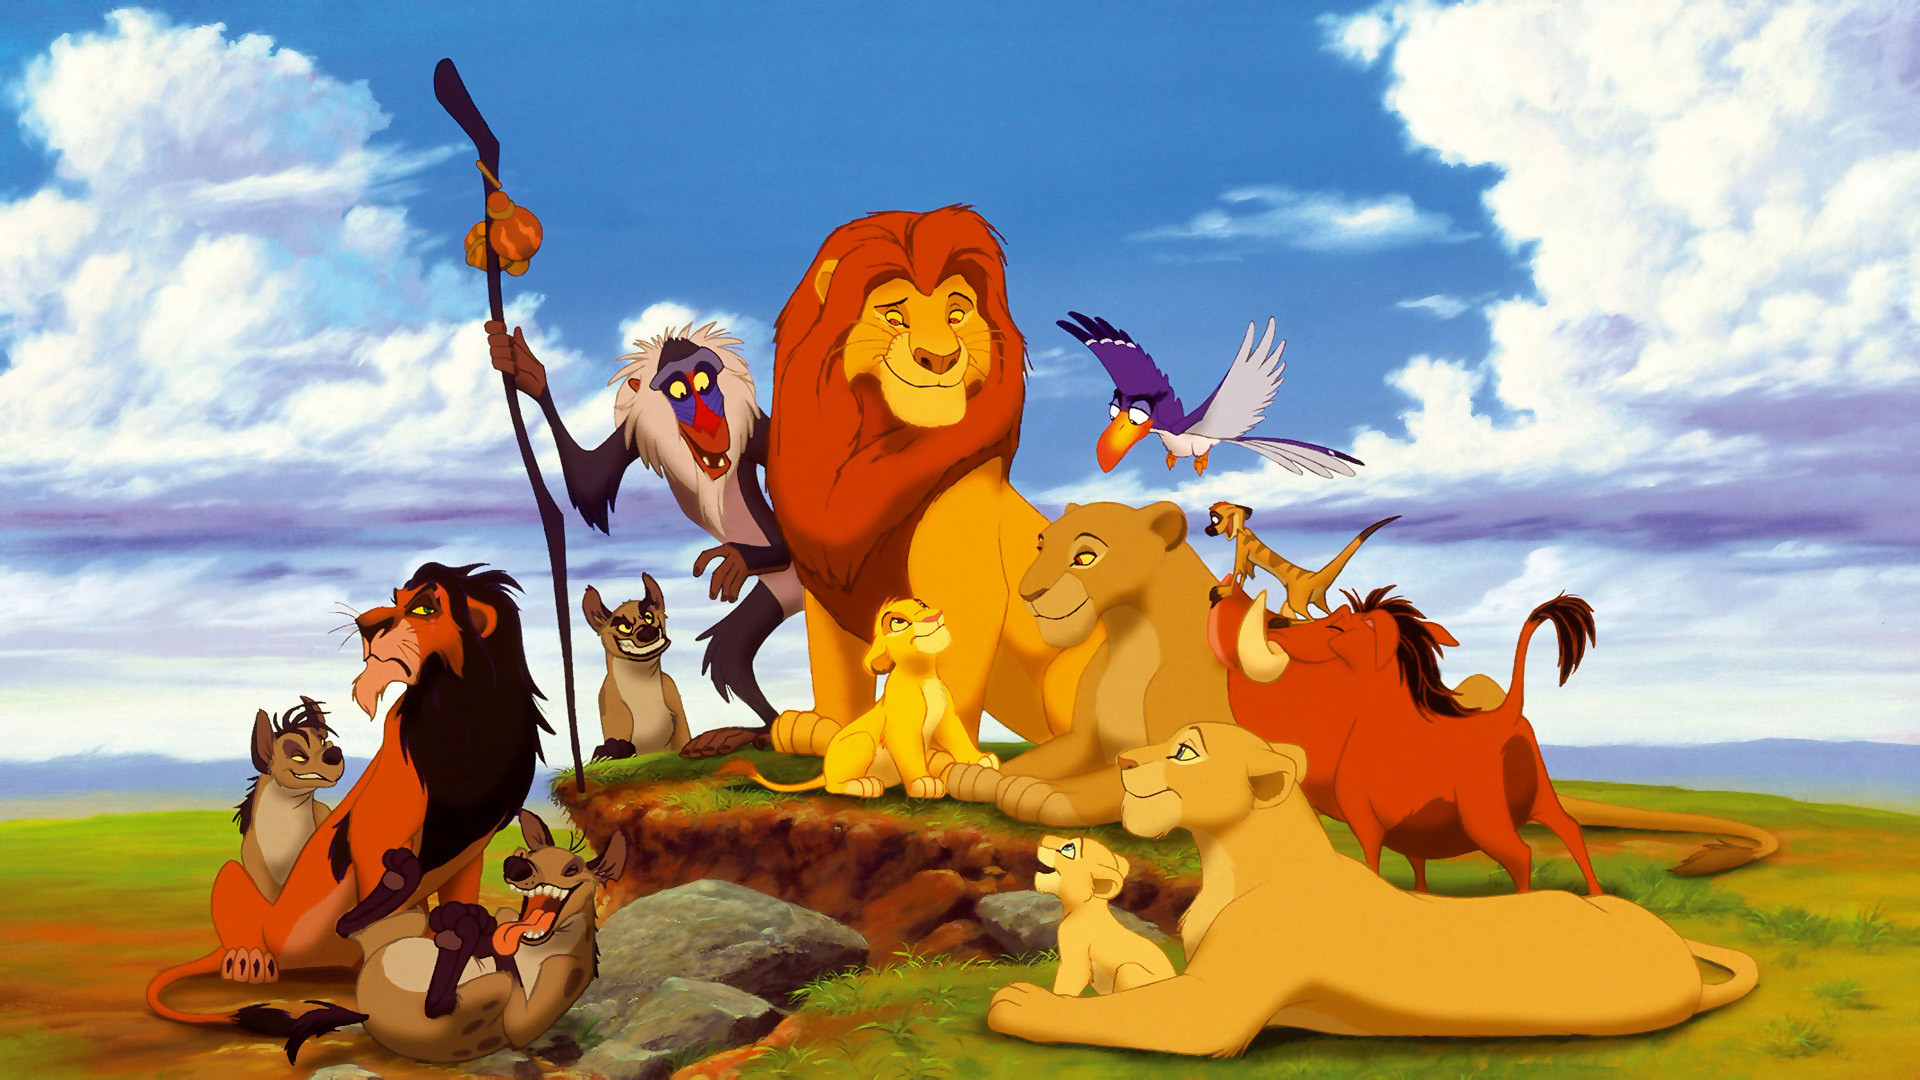 disney vs nature 3 the lion king disneyfied or disney tried